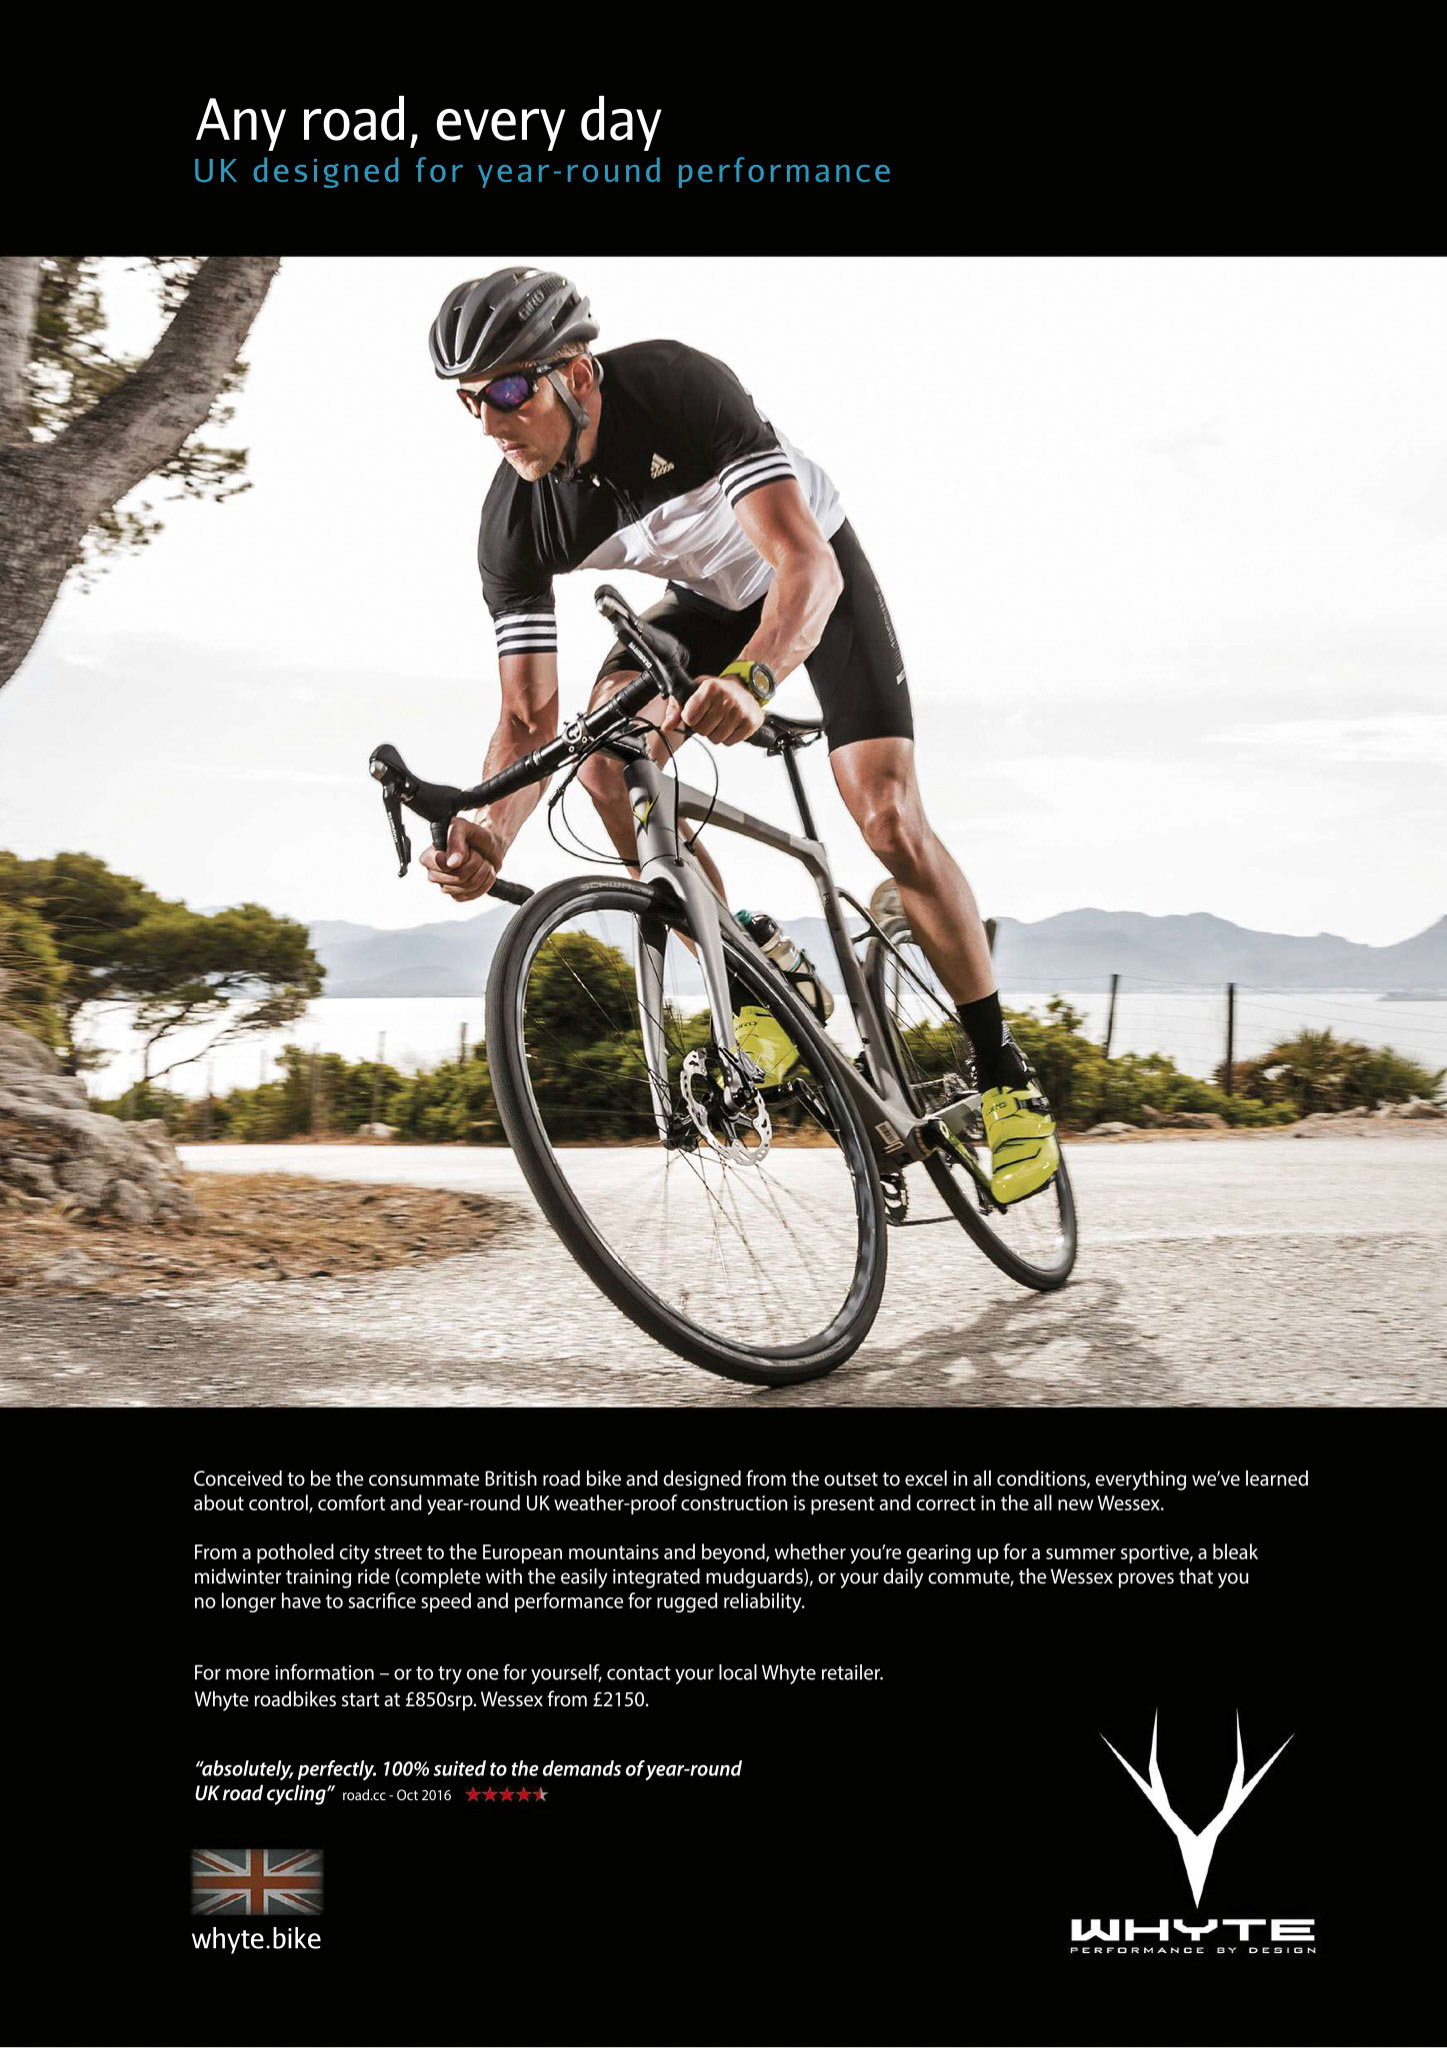 e02f35a7200 Russell Burton | Photographer - Whyte Brochure, Adverts and Web